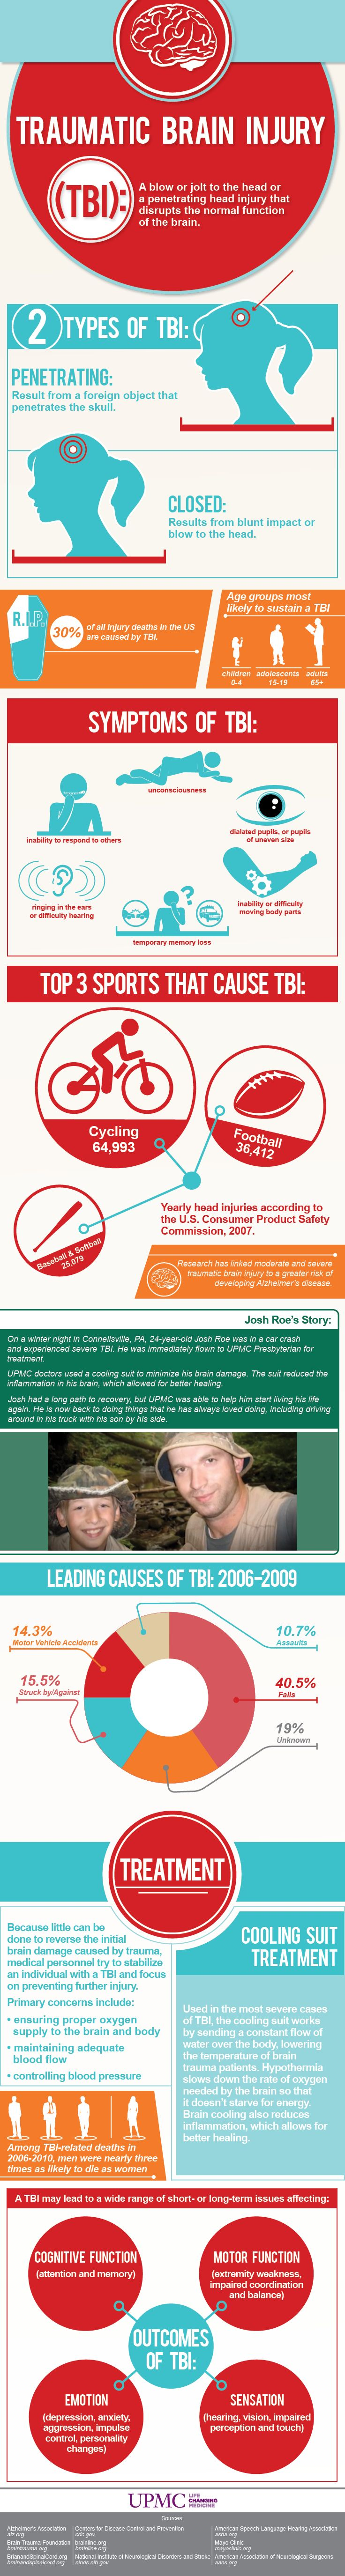 Check out this infographic to learn more about traumatic brain injury, including symptoms, treatments, and outcomes.